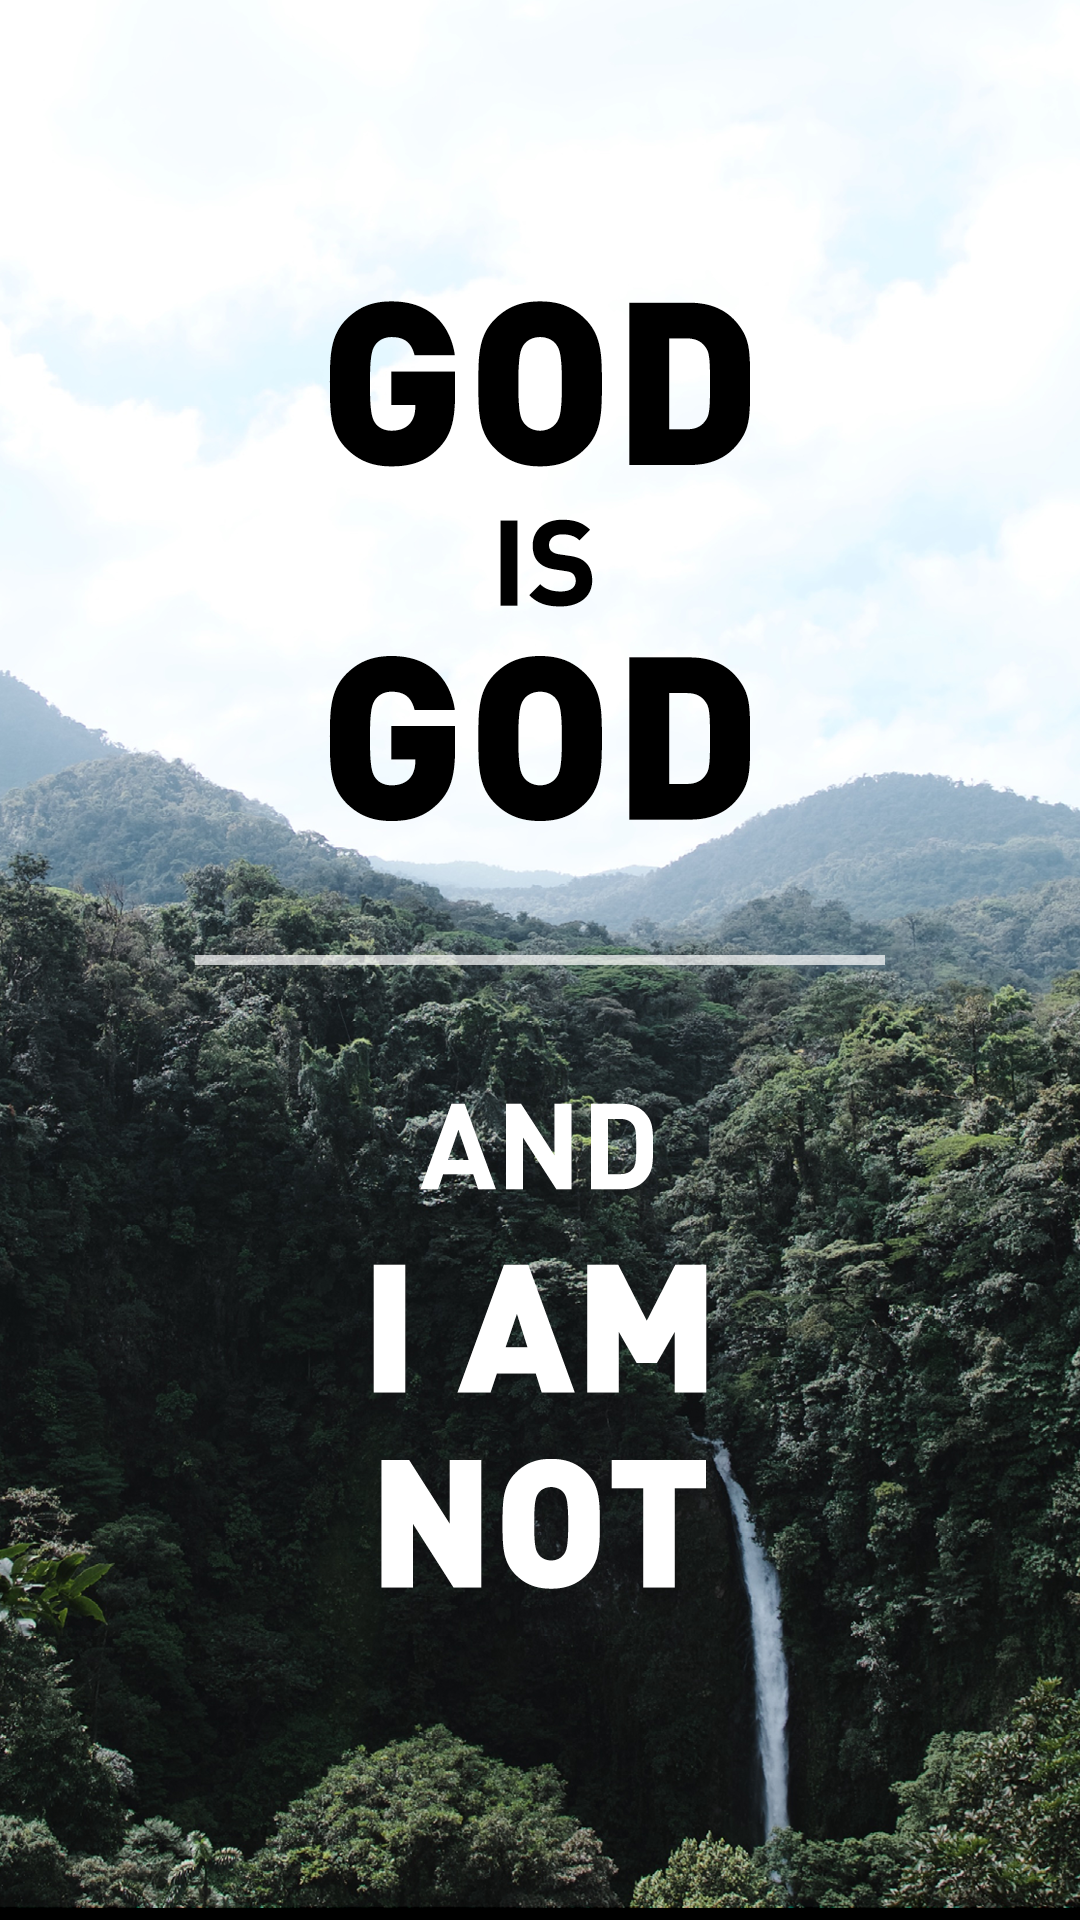 God is God and I am not